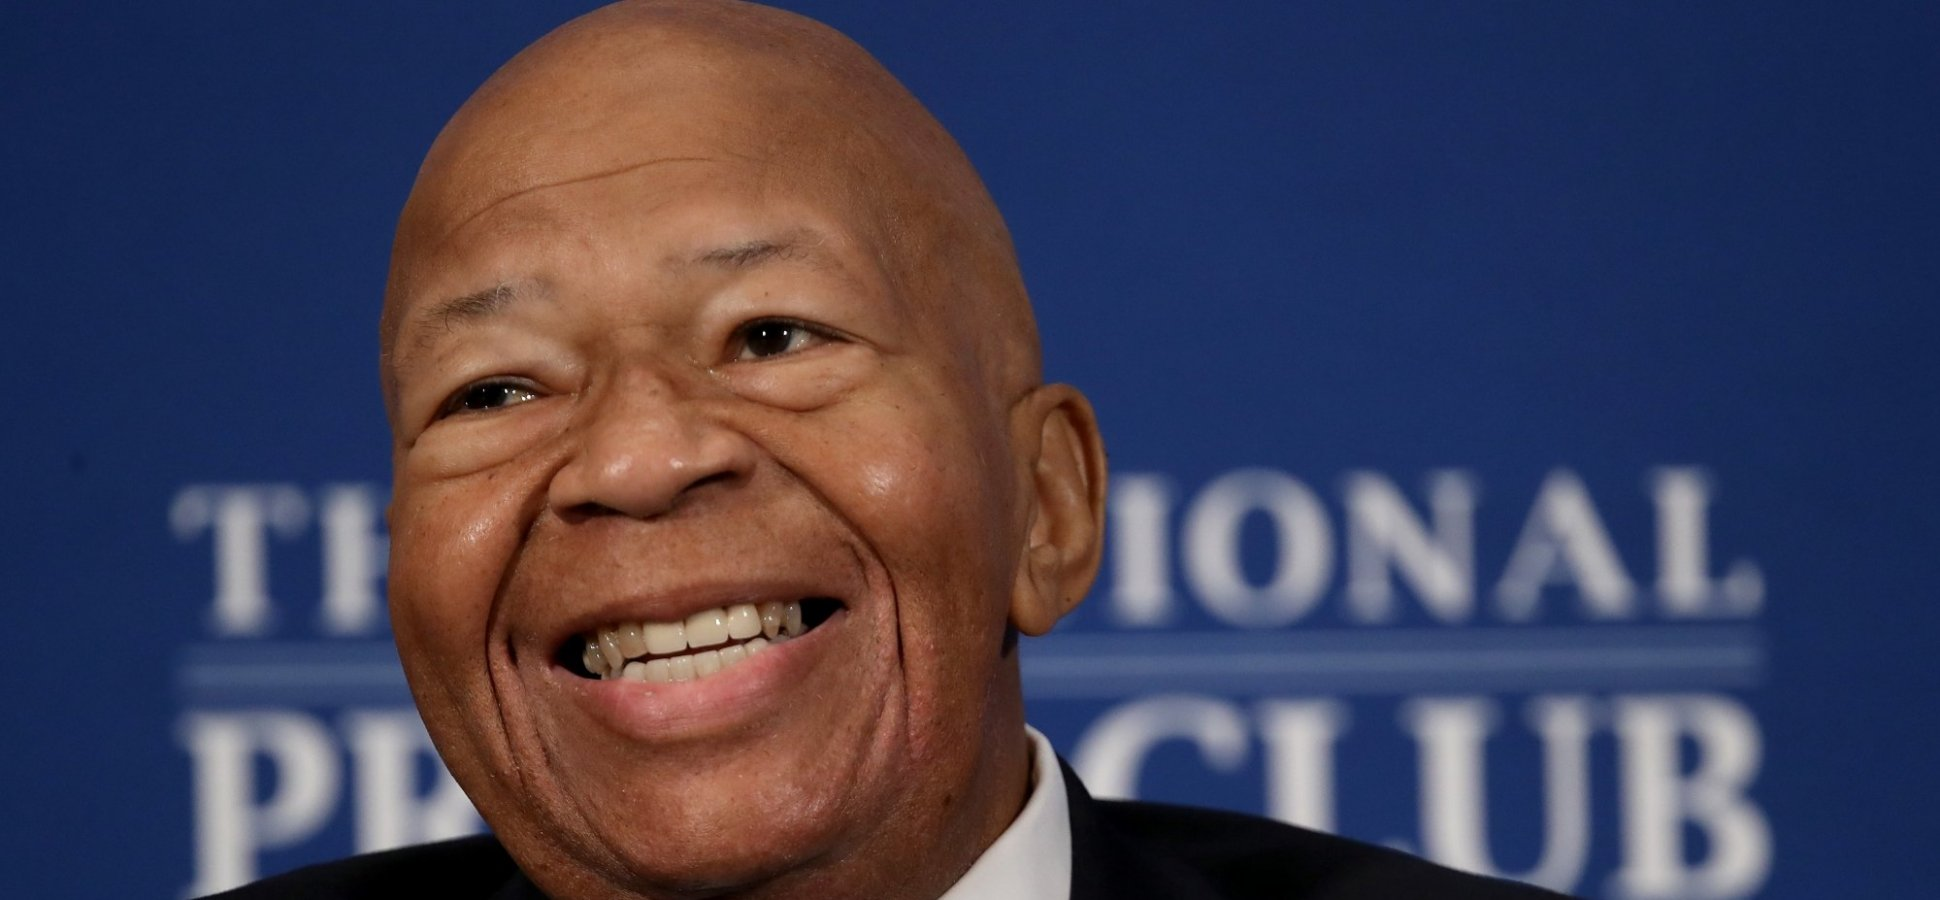 Elijah Cummings Showed How a Leader Engages with Adversaries